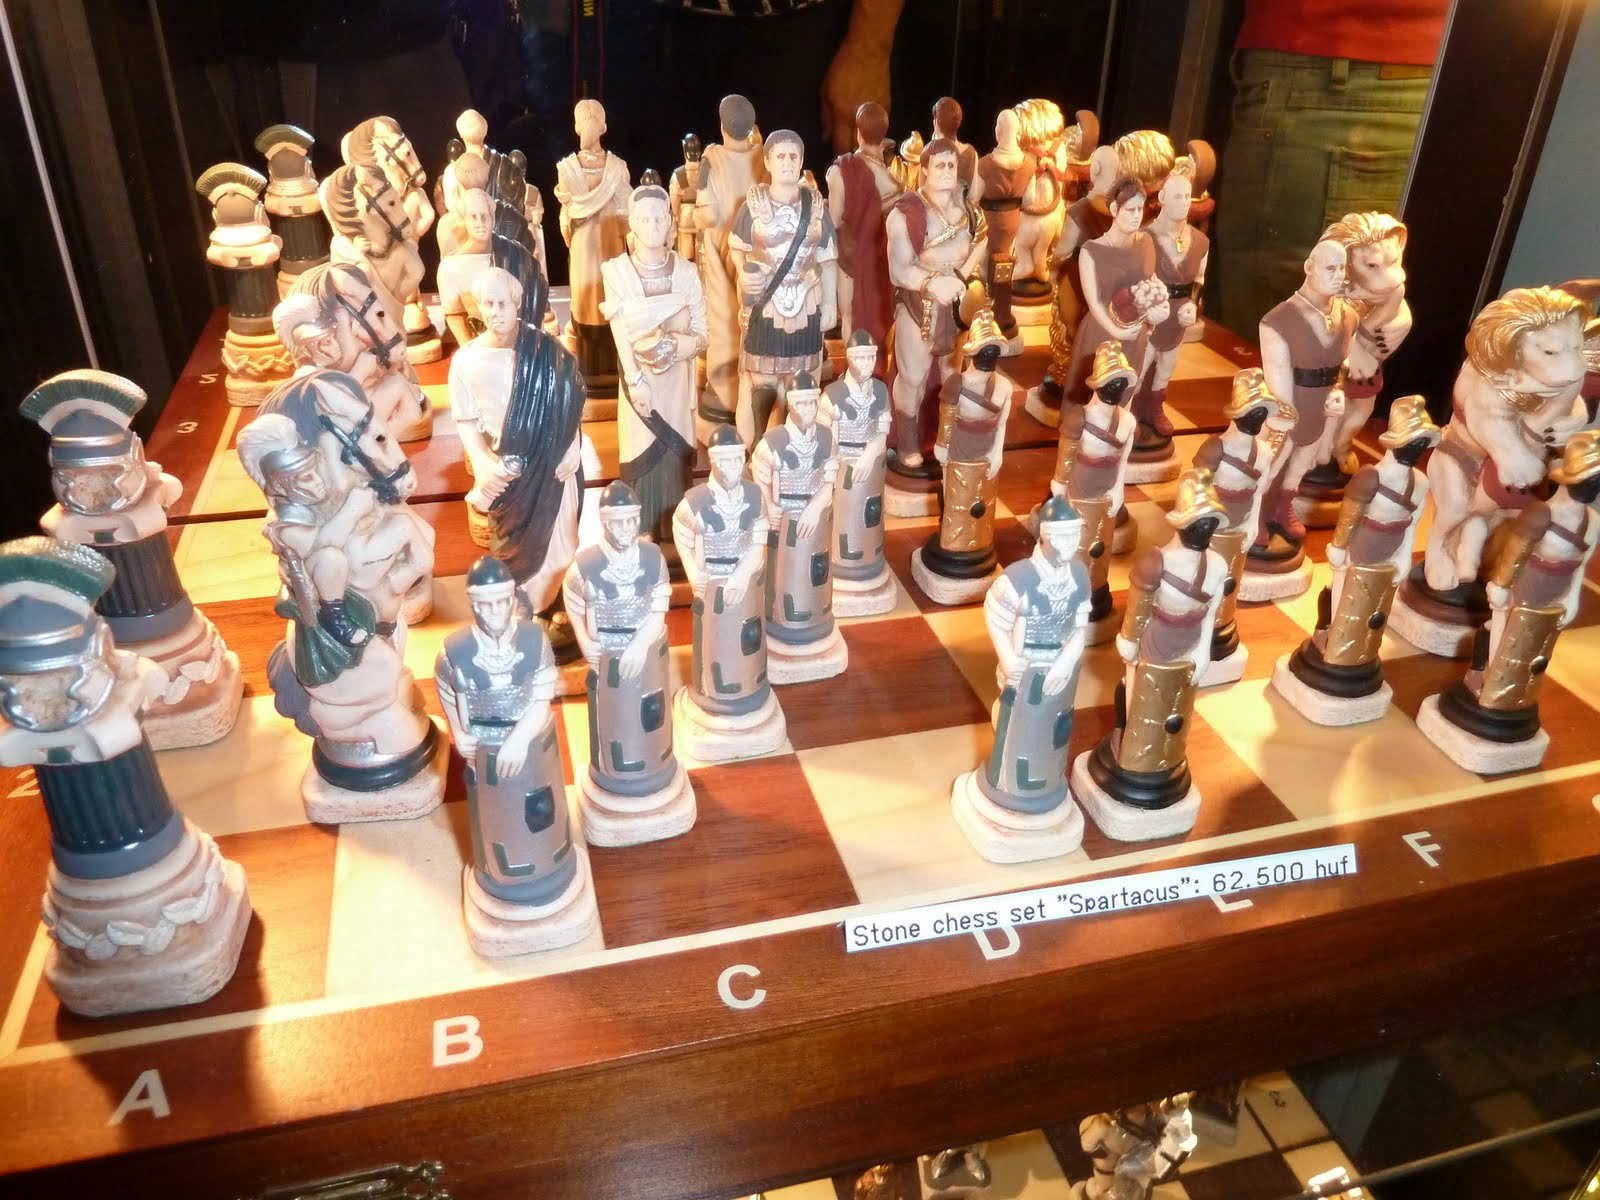 Noah in budapest cool chess sets - Coolest chess sets ...